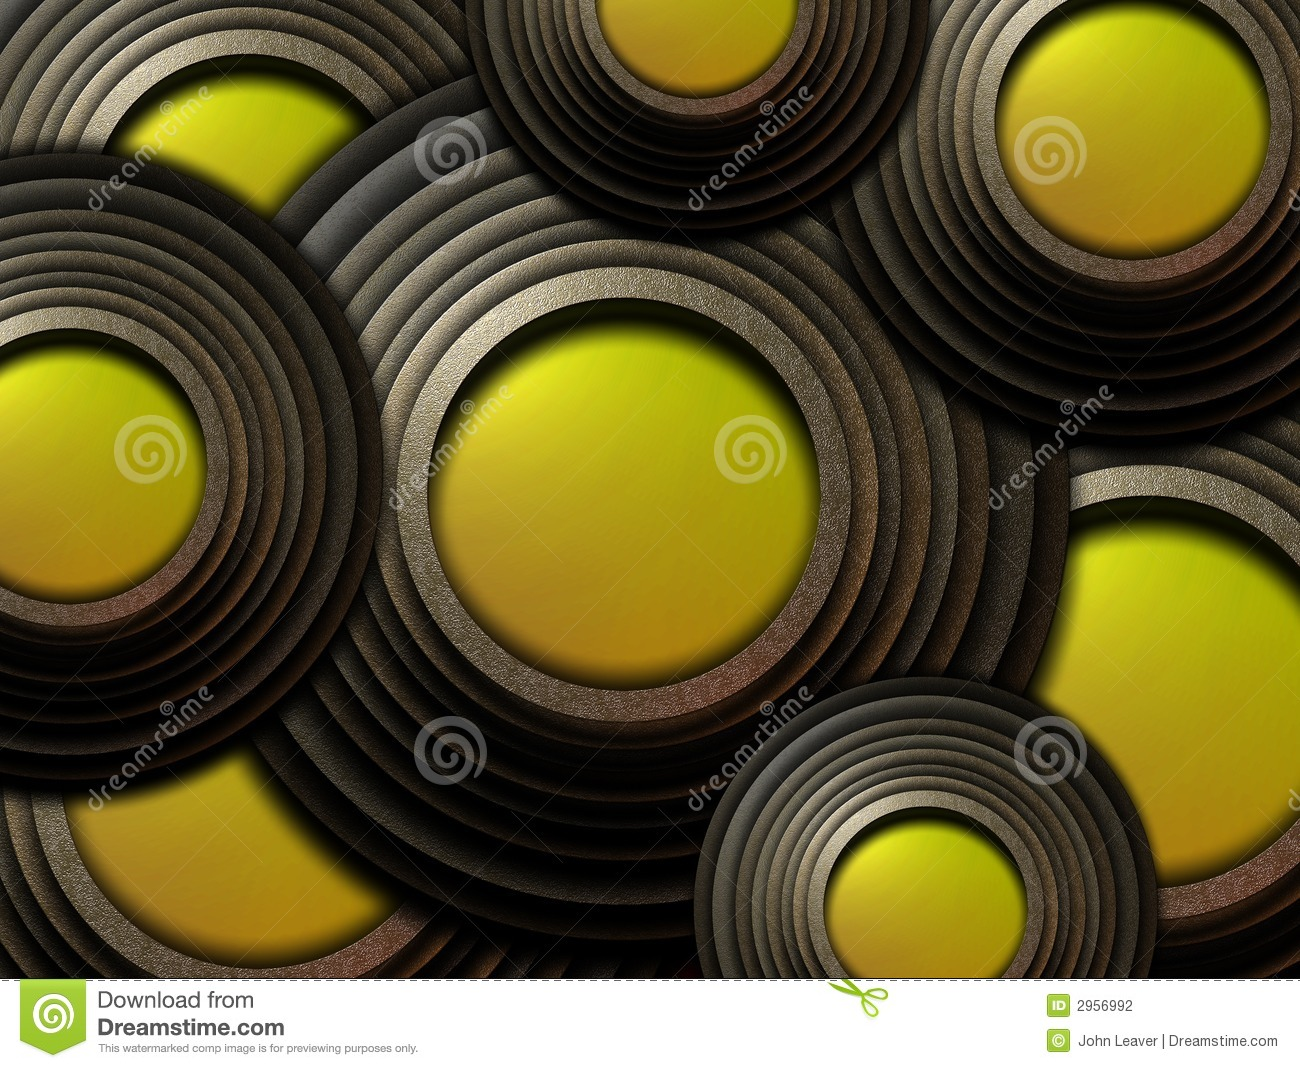 Circular Objects Stock Photography - Image: 2956992